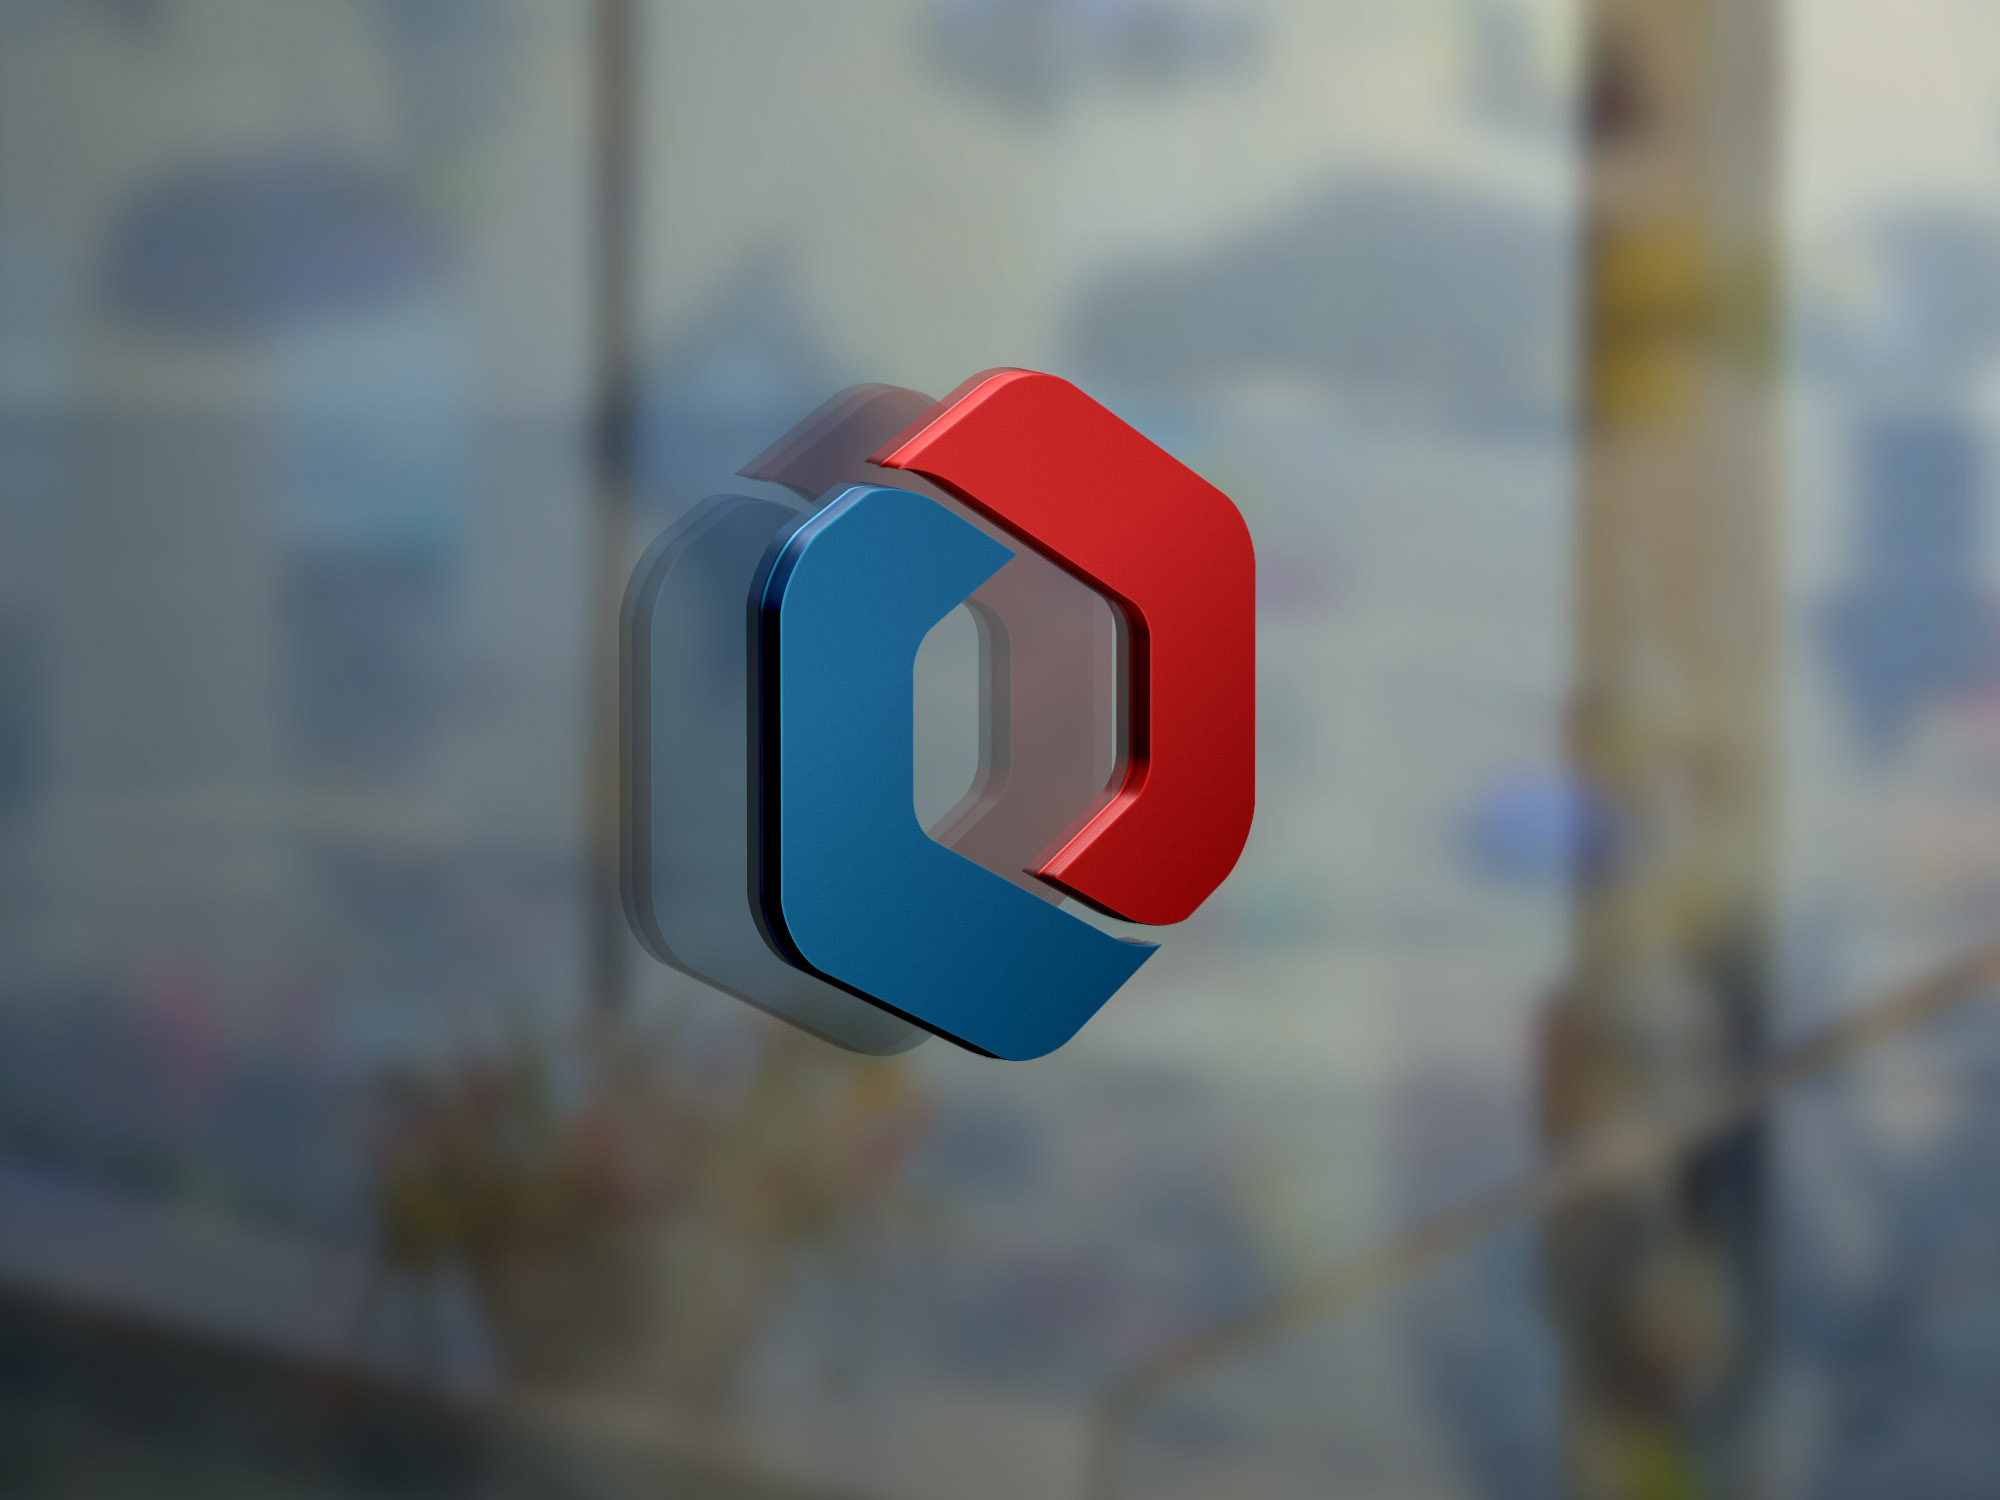 opg-logo-mock-up-window